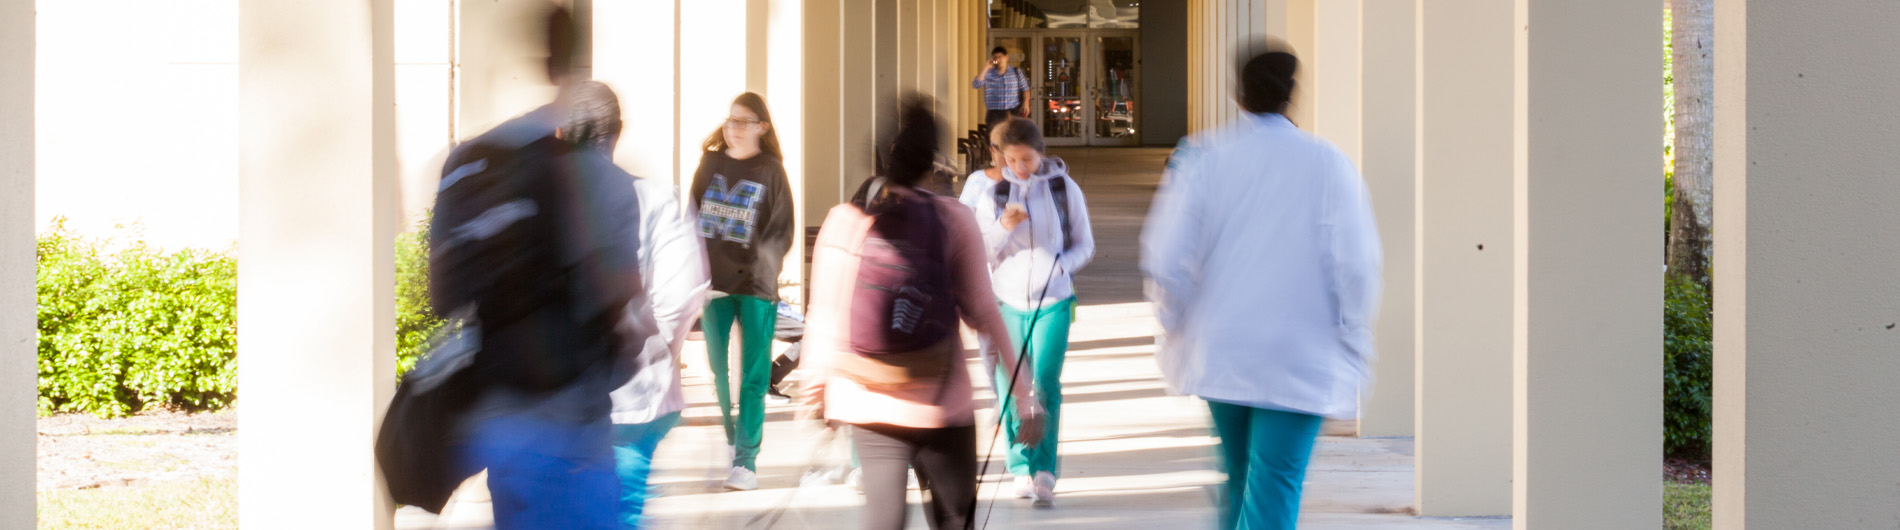 5 or 6 students walking down a column-lined hallway